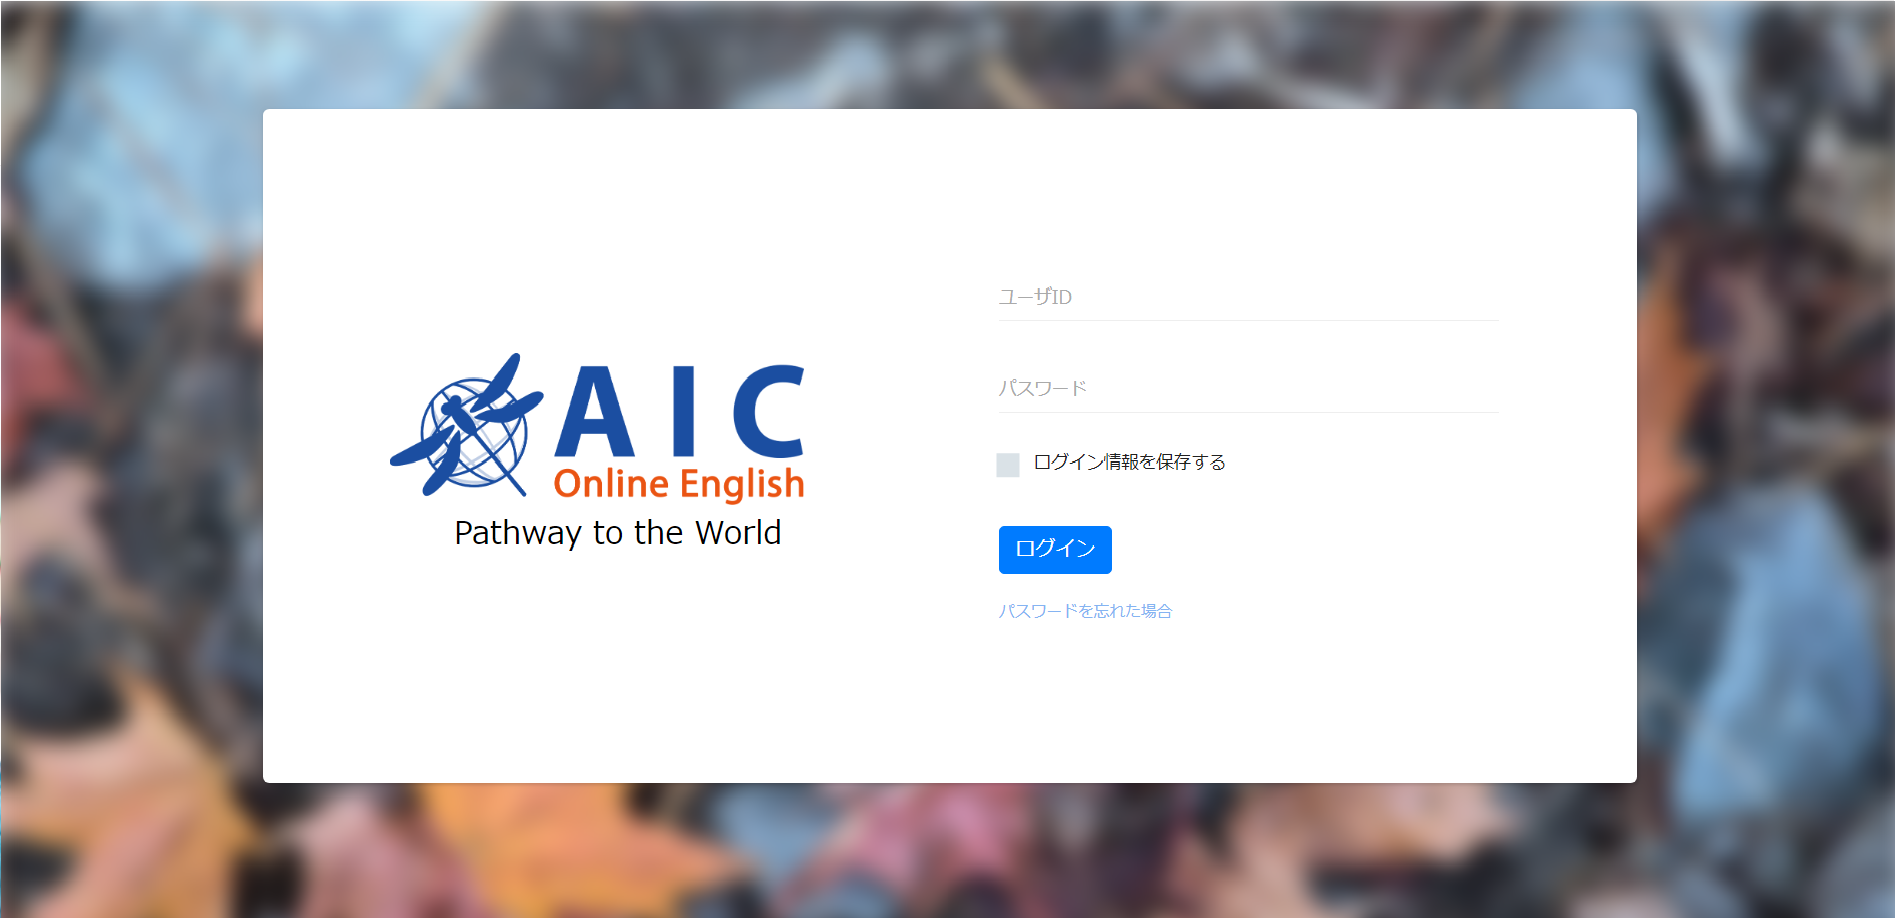 AIC Online English